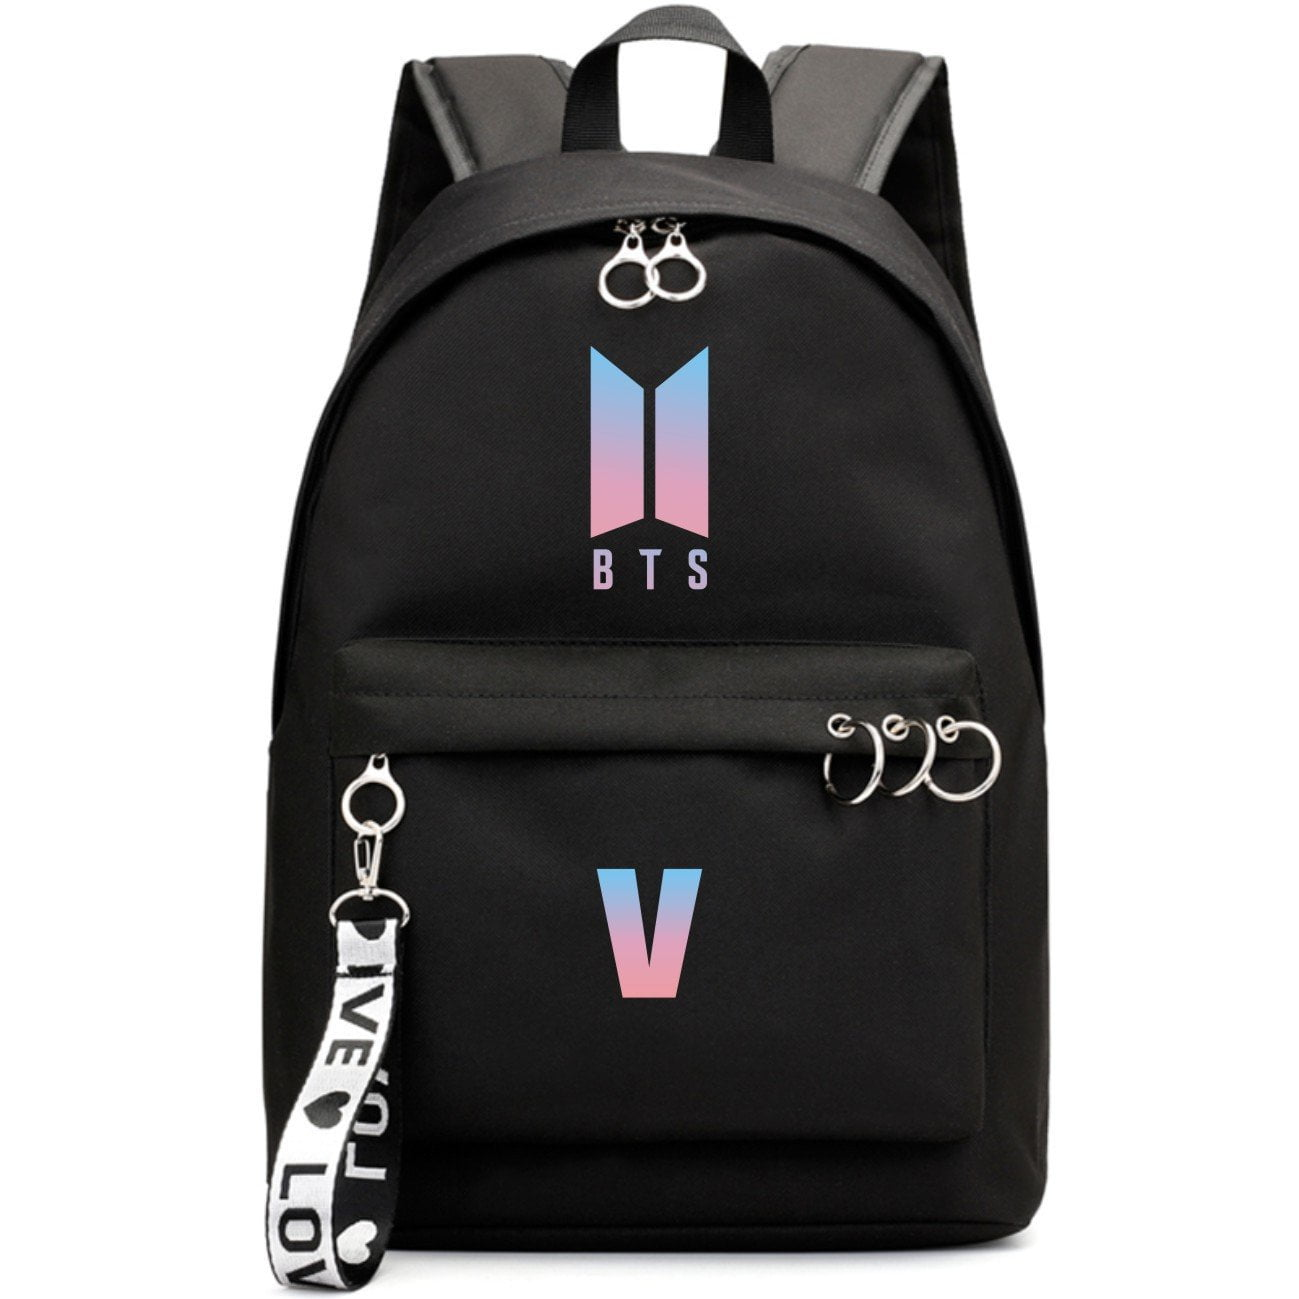 BTS New Logo Large Capacity Backpack / School Bag with Silver Rings in 2 Colours  583071224455#3925845045031